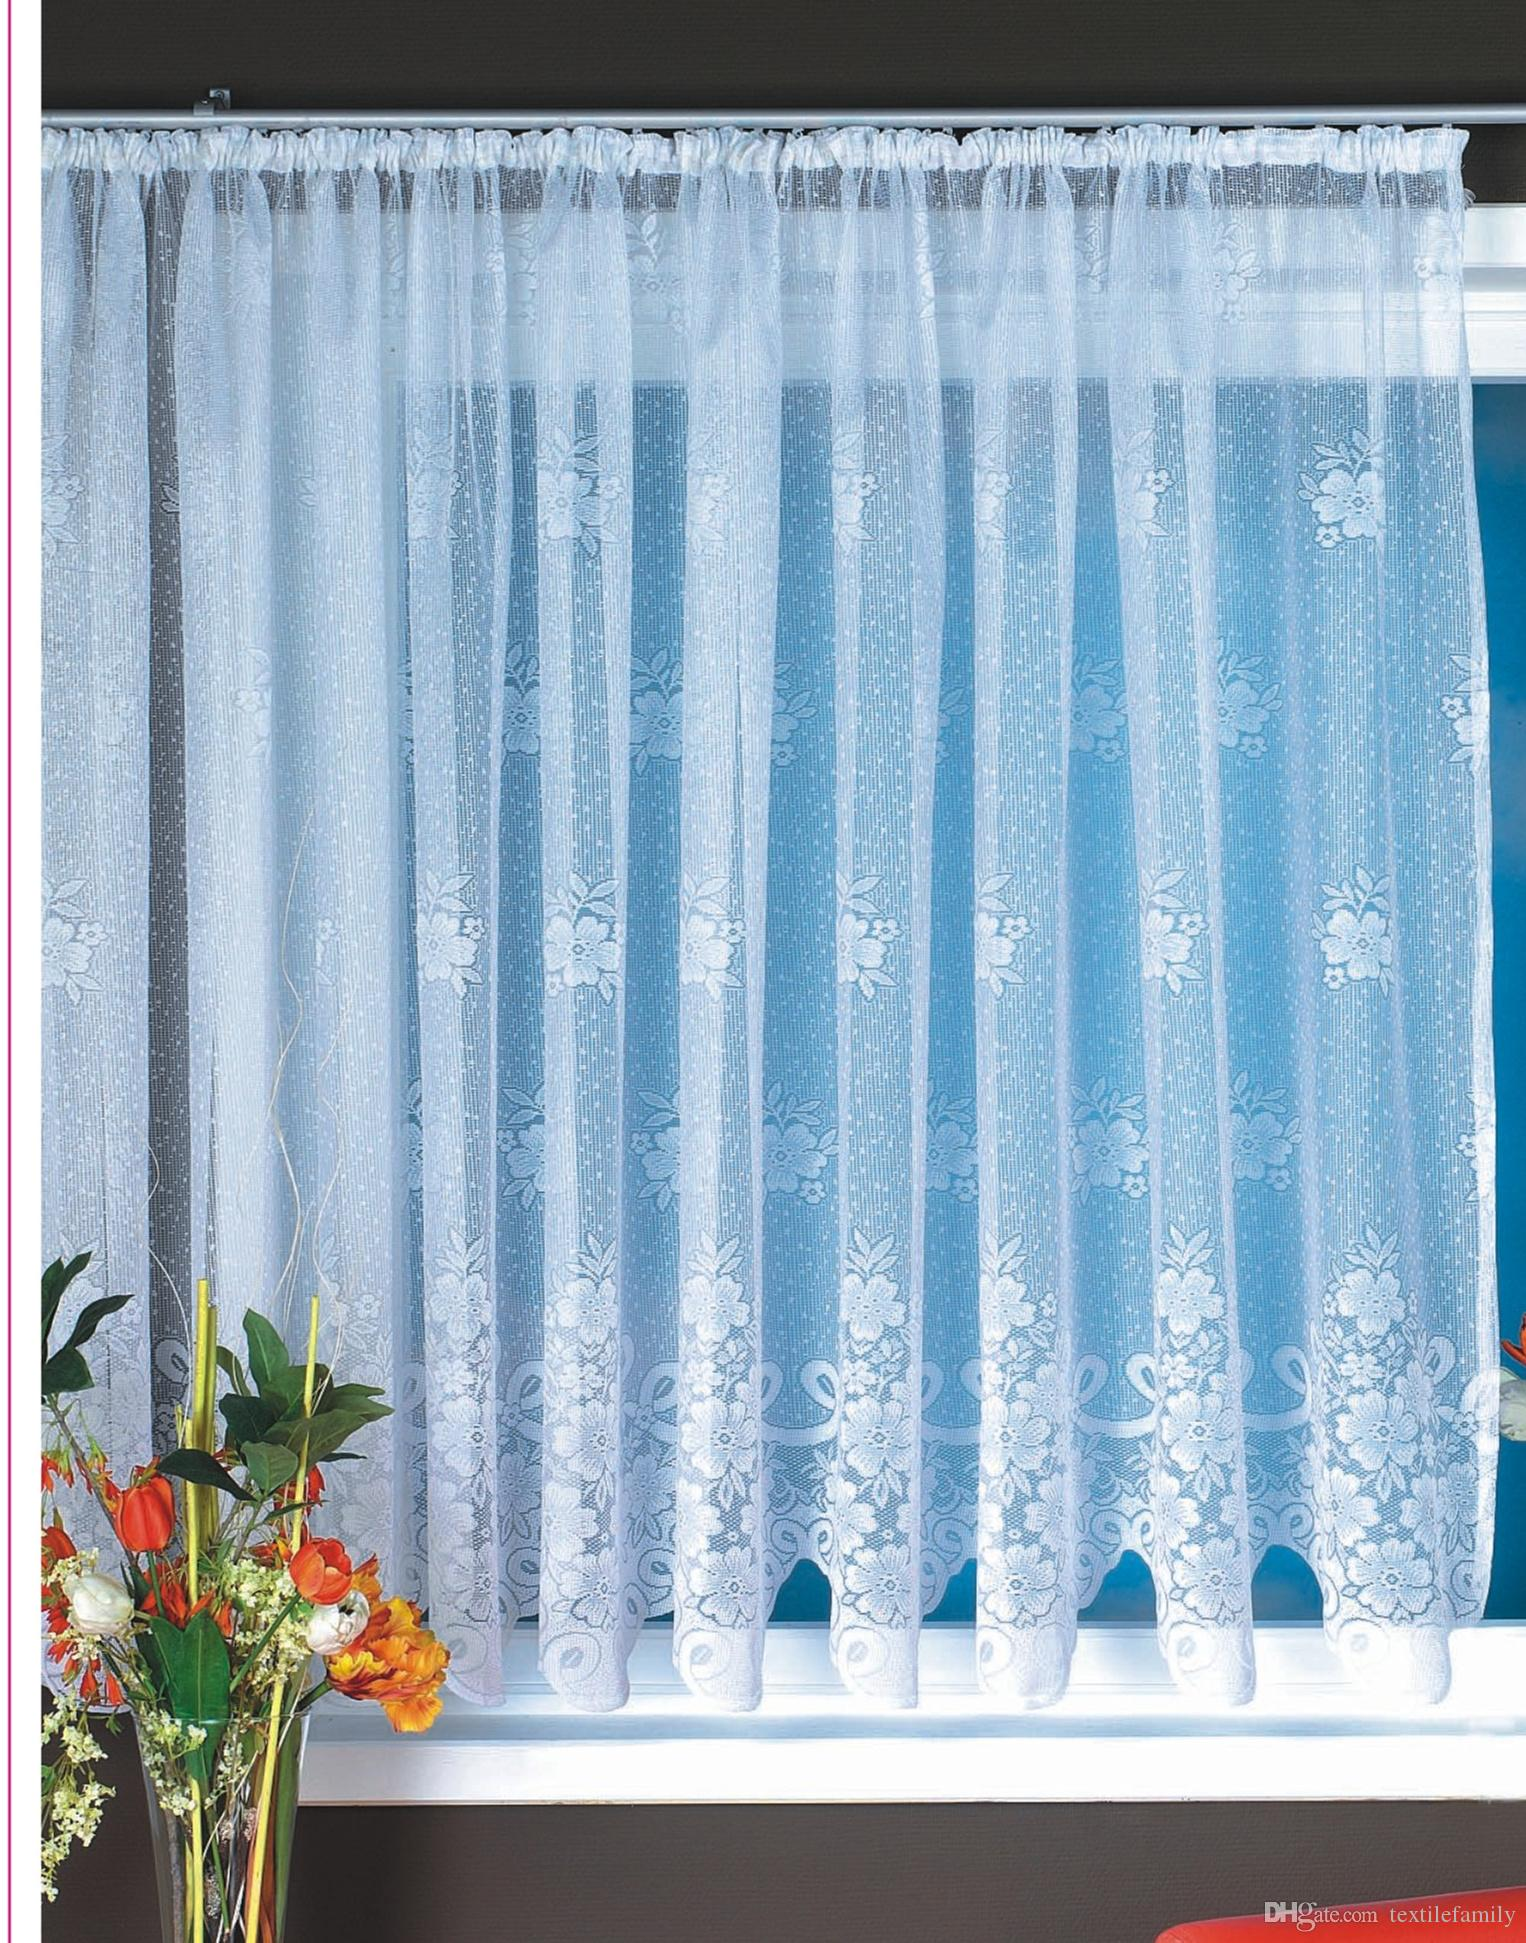 Sale Polyester Lace Big Window Curtains for Lace Bay